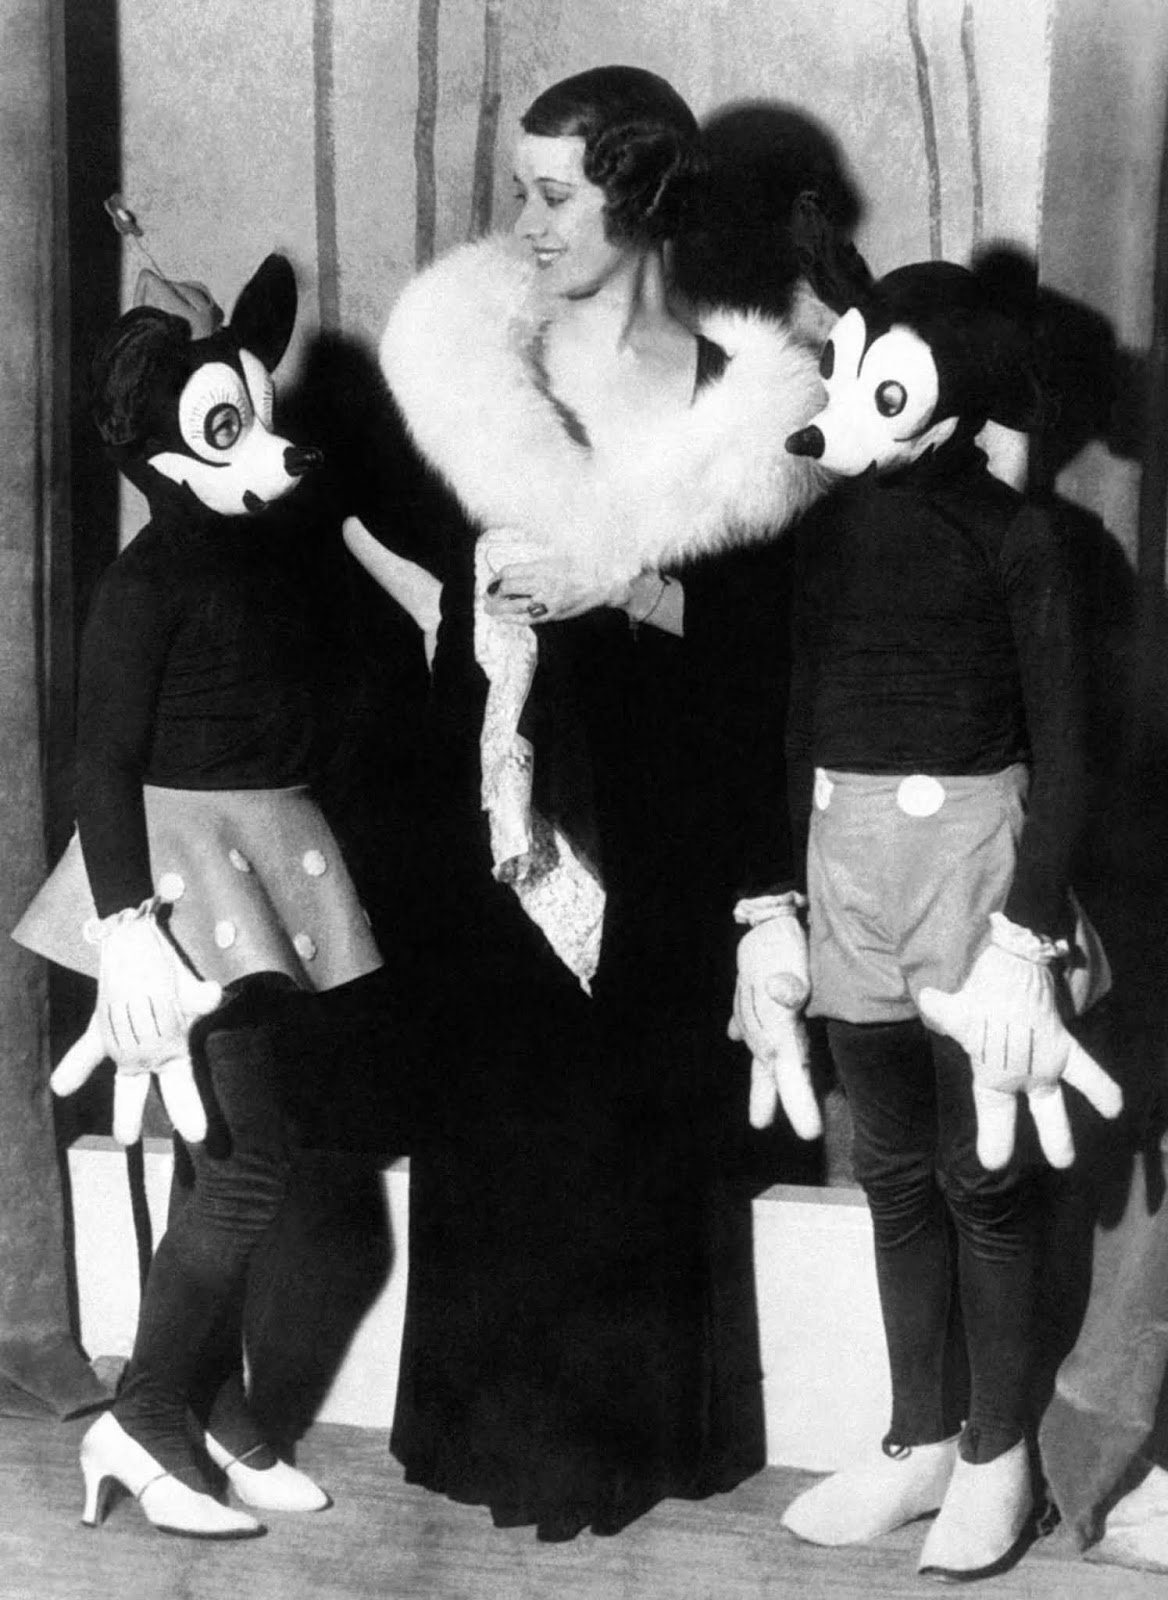 Lily Pons, singer at New York's Metropolitan Opera with Mickey and Minnie. 1932.